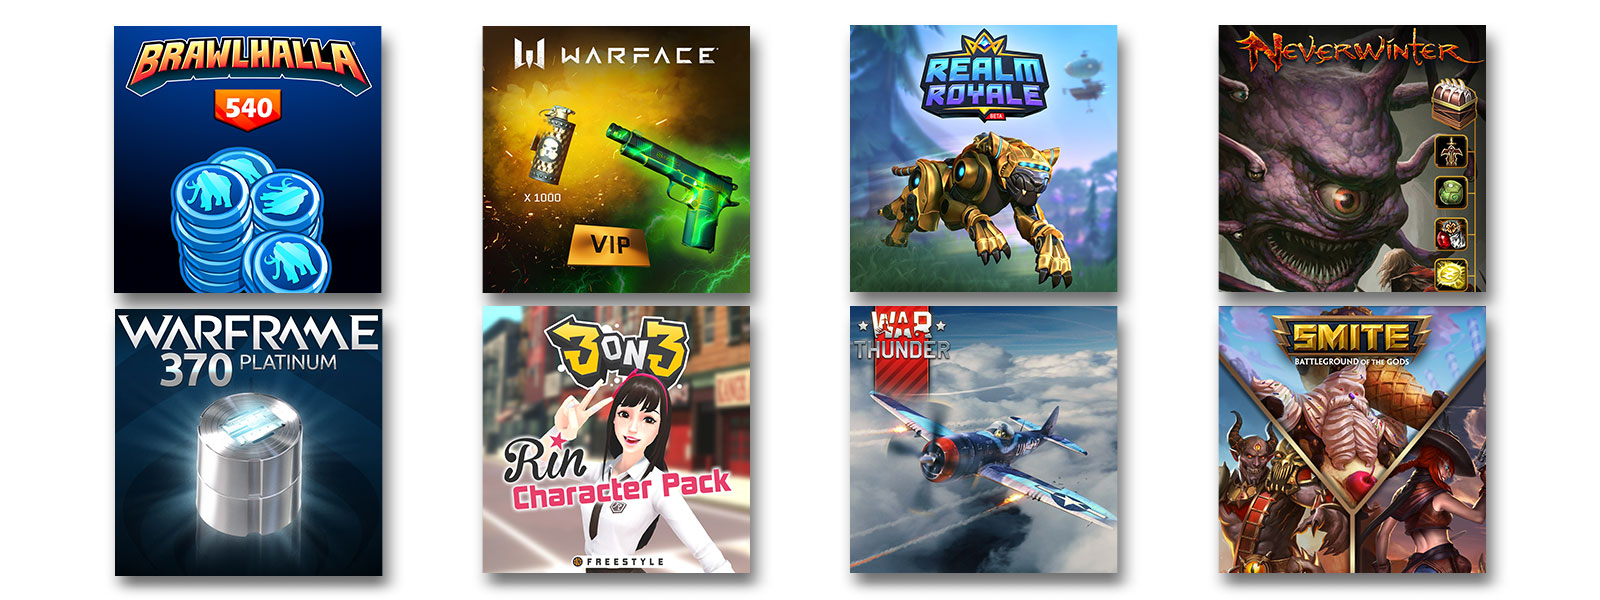 Six game add-ons on a white background: Brawlhalla 540, Warface VIP, Realm Royale, Neverwinter, 3 on 3 Rin Character Pack, Warframe 370 Platinum, War Thunder, and SMITE skins bundle.